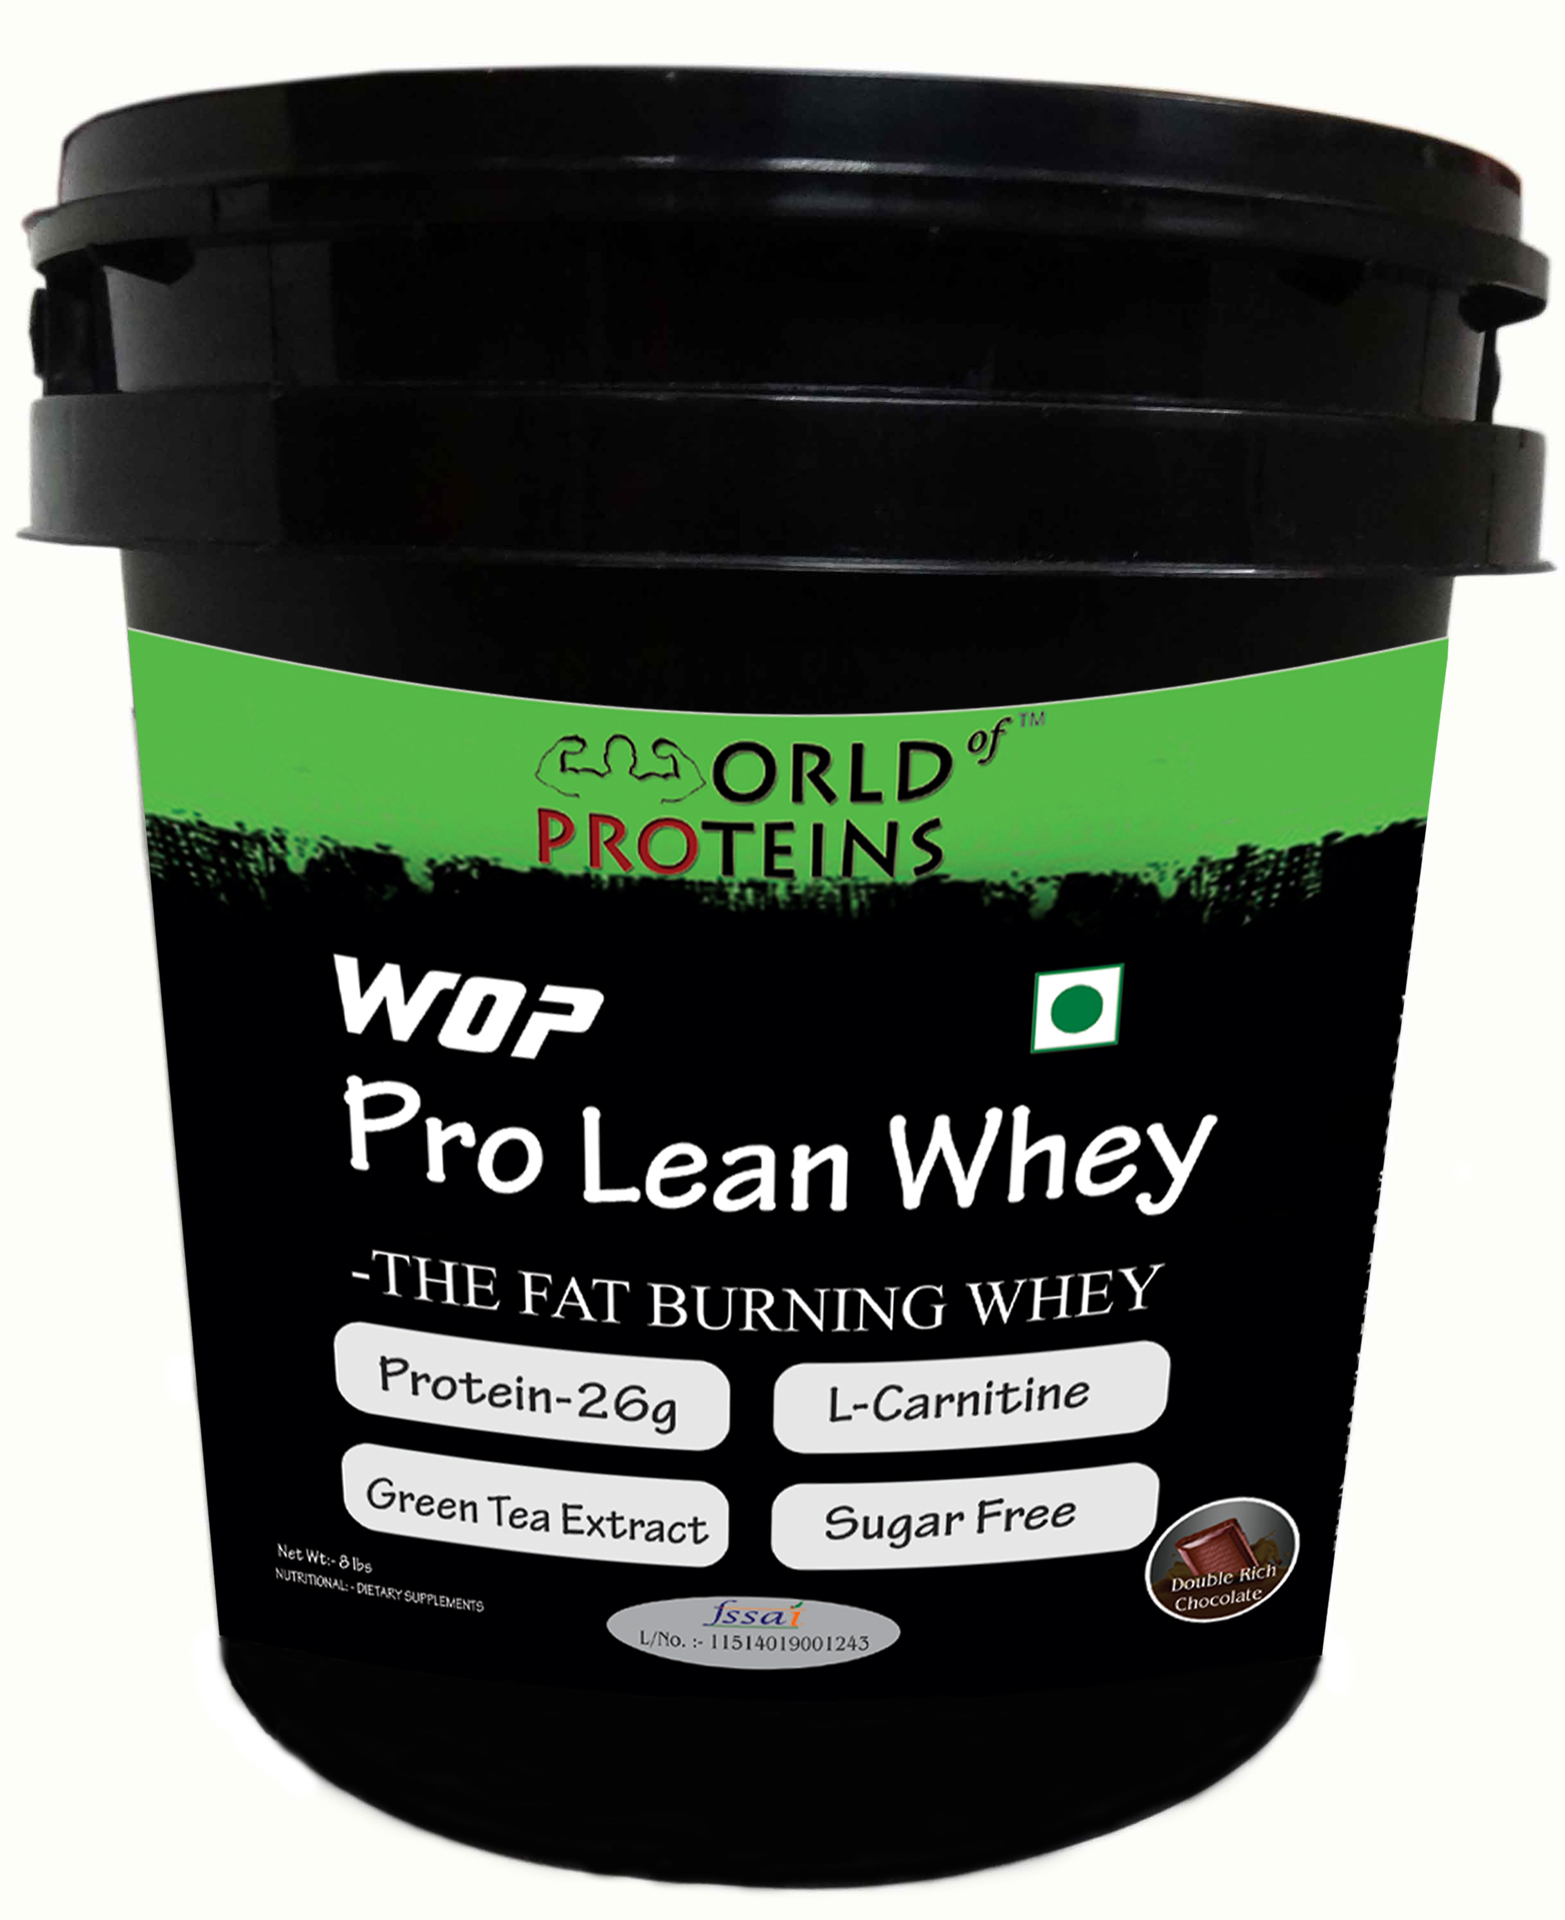 WOP PRO LEAN WHEY,8-lb double-rich-chocolate ,Shaker Free!